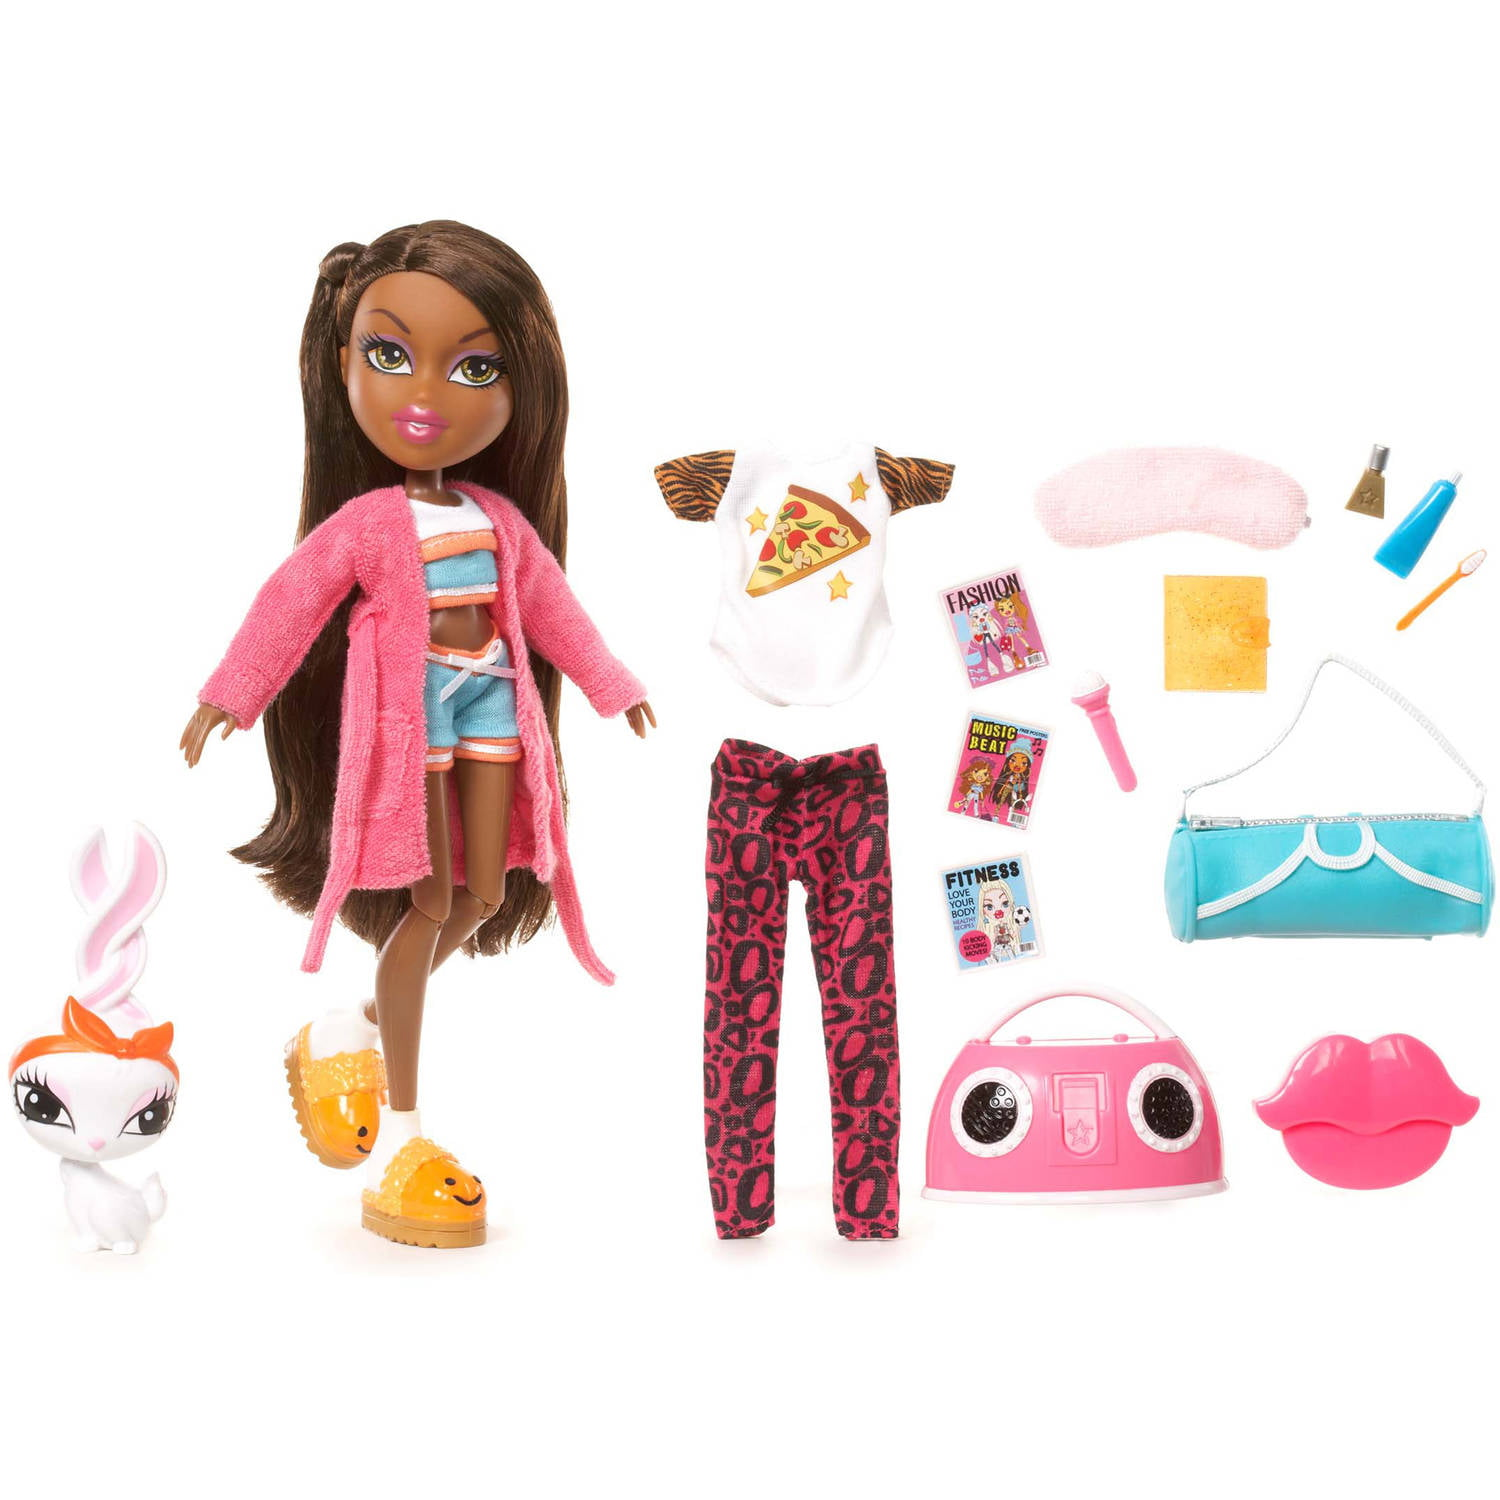 Bratz Sleepover Party Doll, Sasha by CHOI'S EARLY LIGHT TECHNOLOGY (SHENZHEN) COMPANY LTD